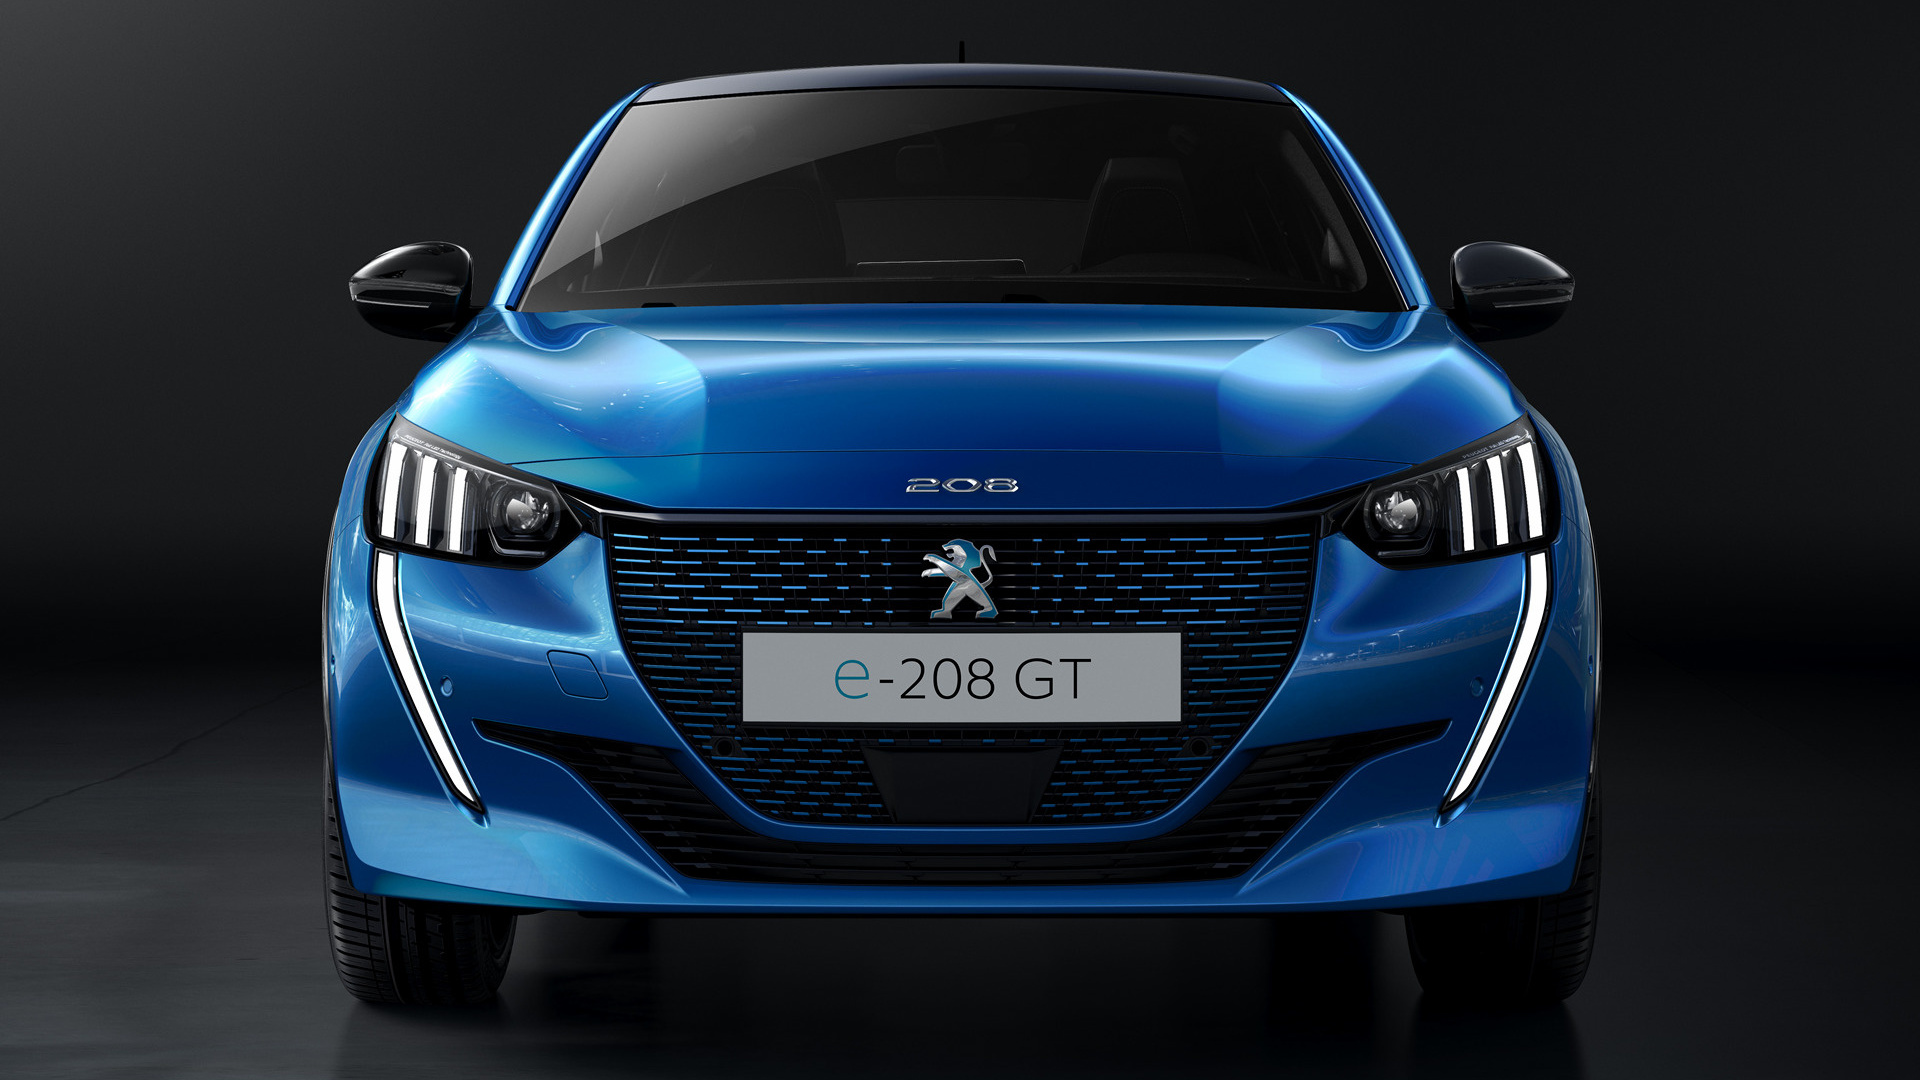 2019 Peugeot e-208 GT - Wallpapers and HD Images | Car Pixel